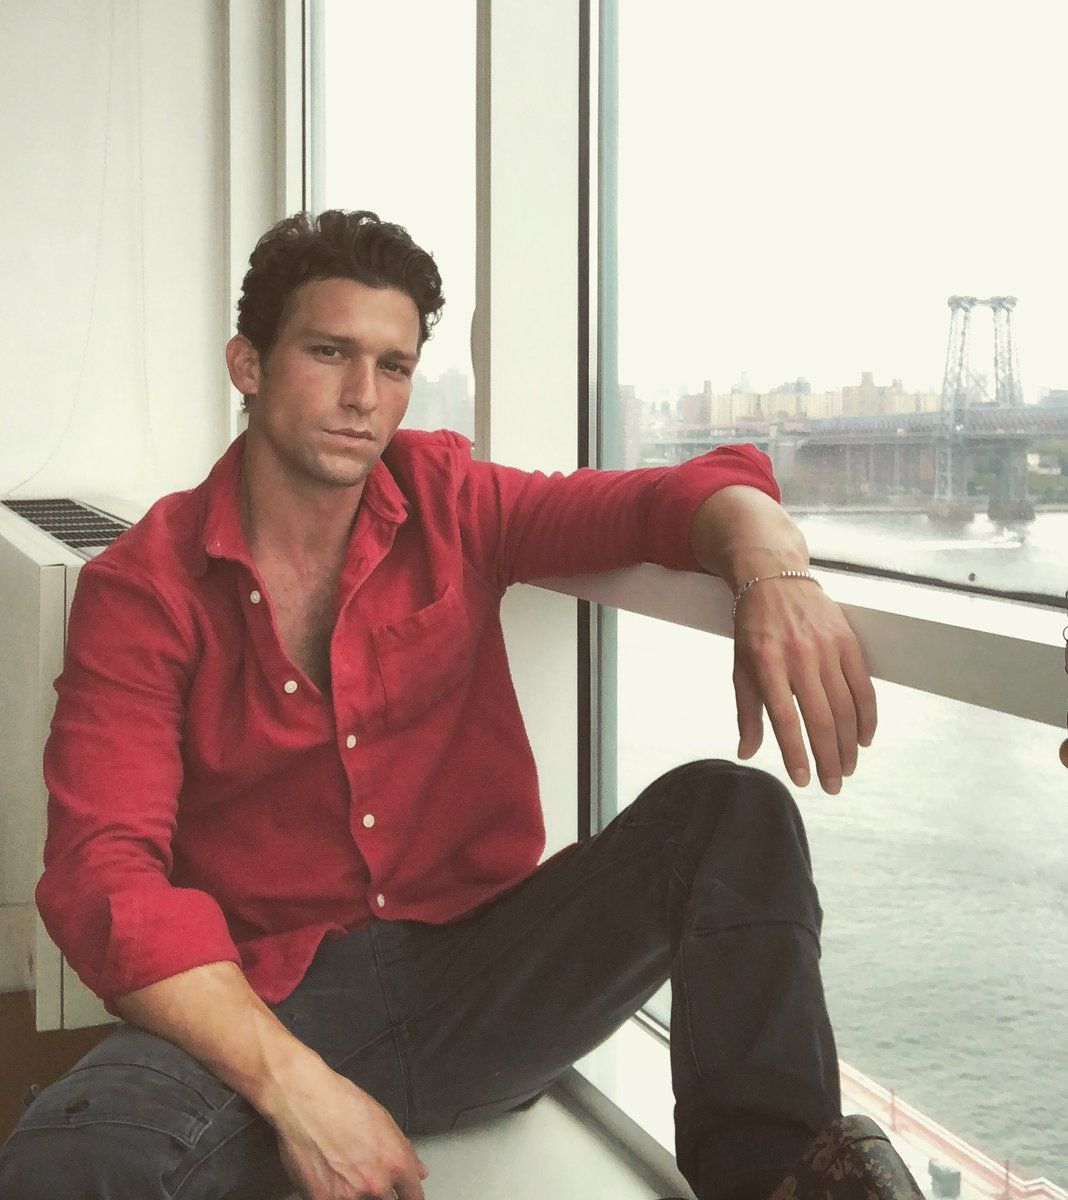 Pin By Speyton On Daren Kagasoff Daren Kagasoff Instagram Profile Instagram Ask anything you want to learn about daren kagasoff by getting answers on askfm. pin by speyton on daren kagasoff